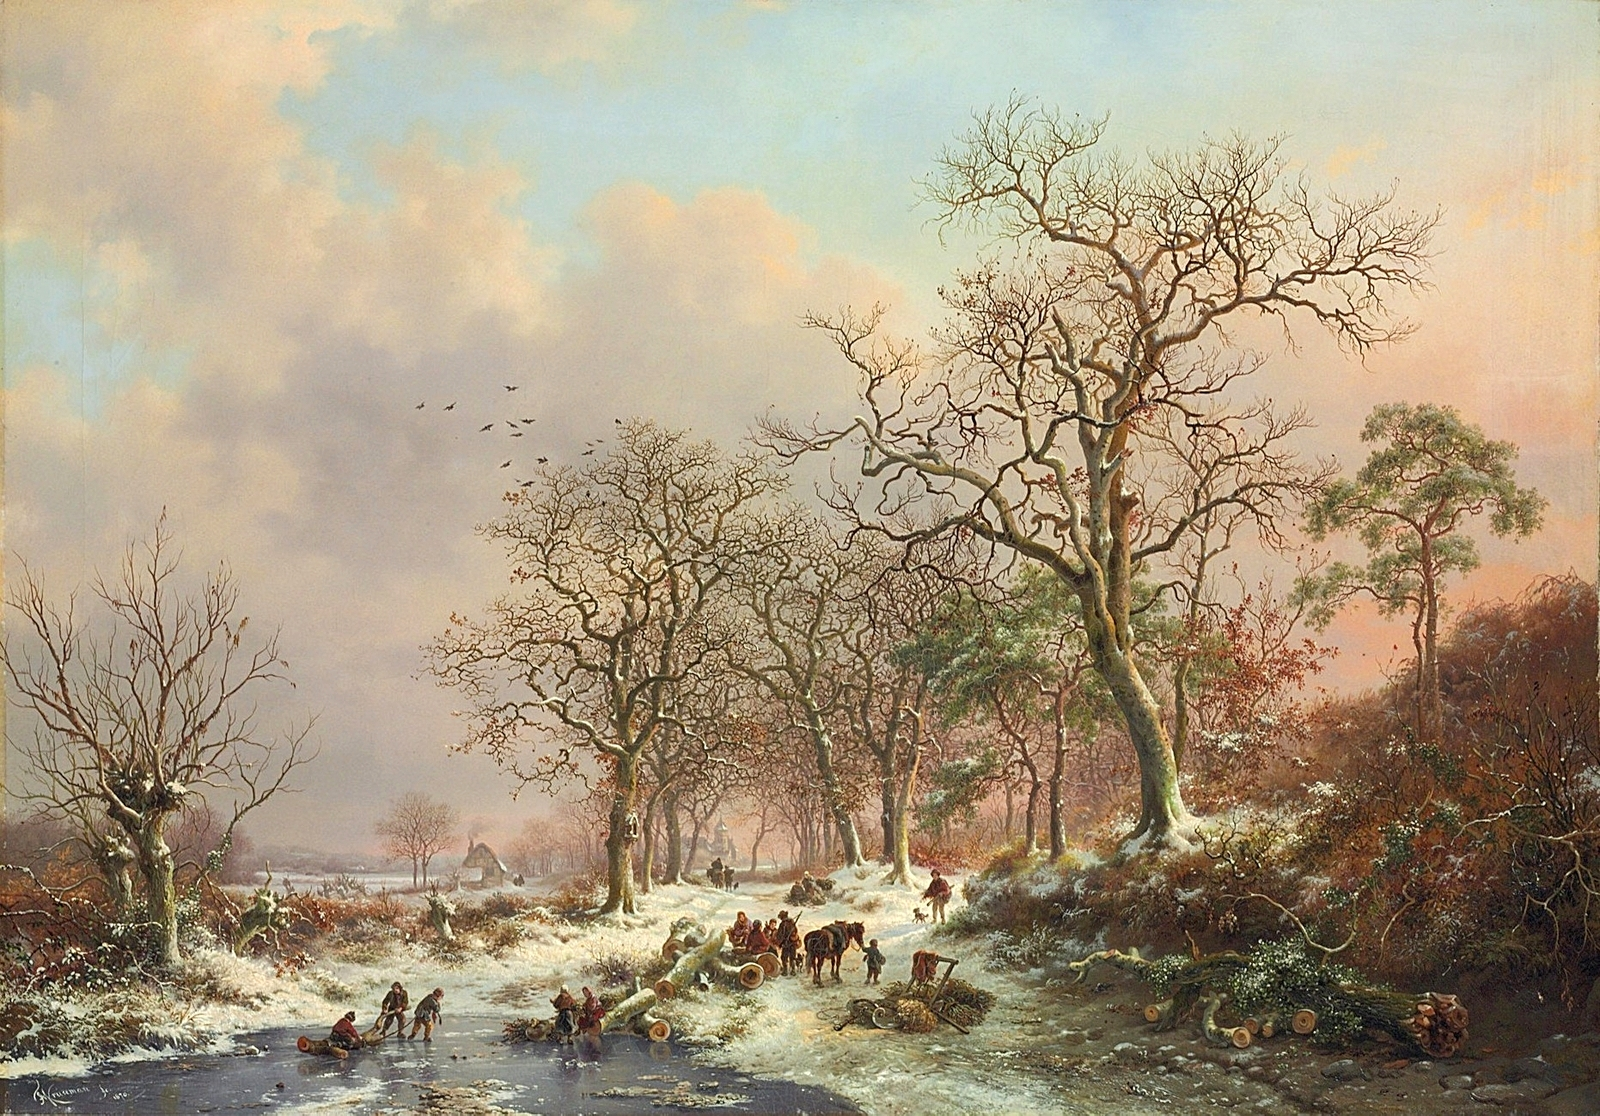 Frederik Marinus Kruseman – private collection. Title: Wood gatherers in a winter landscape, with a castle beyond. Date: 1870. Materials: oil on canvas. Dimensions: 70 x 100.5 cm. Inscriptions: FMKruseman fc. 1870 (lower left); signed and dated again and authenticated 'Le soussigné déclare avoir peint le tableau ci contre original et sans reproduction Bruxelles 1870 FMKruseman' (on the reverse). Sold by Christie's in London, on July 7, 2009.. Source: http://2.bp.blogspot.com/-xU_ohar4F1E/VoM2gdUFvDI/AAAAAAAA3gQ/7qRmnVwmdcY/s1600/1870_%25D0%25A1%25D0%25B1%25D0%25BE%25D1%2580%25D1%2589%25D0%25B8%25D0%25BA%25D0%25B8%2B%25D1%2585%25D0%25B2%25D0%25BE%25D1%2580%25D0%25BE%25D1%2581%25D1%2582%25D0%25B0%2B%25D0%25B2%2B%25D0%25B7%25D0%25B8%25D0%25BC%25D0%25BD%25D0%25B5%25D0%25BC%2B%25D0%25BF%25D0%25B5%25D0%25B9%25D0%25B7%25D0%25B0%25D0%25B6%25D0%25B5%2B%25D1%2581%2B%25D0%25B7%25D0%25B0%25D0%25BC%25D0%25BA%25D0%25BE%25D0%25BC%2B%25D0%25B2%25D0%25B4%25D0%25B0%25D0%25BB%25D0%25B8%2B%2528Wood%2Bgatherers%2Bin%2Ba%2Bwinter%2Blandscape%2529_70%2B%25D1%2585%2B100.5_%25D1%2585.%252C%25D0%25BC._%25D0%25A7%25D0%25B0%25D1%2581%25D1%2582%25D0%25BD%25D0%25BE%25D0%25B5%2B%25D1%2581%25D0%25BE%25D0%25B1%25D1%2580%25D0%25B0%25D0%25BD%25D0%25B8%25D0%25B5.jpg. I have changed the light and contrast of the original photo.